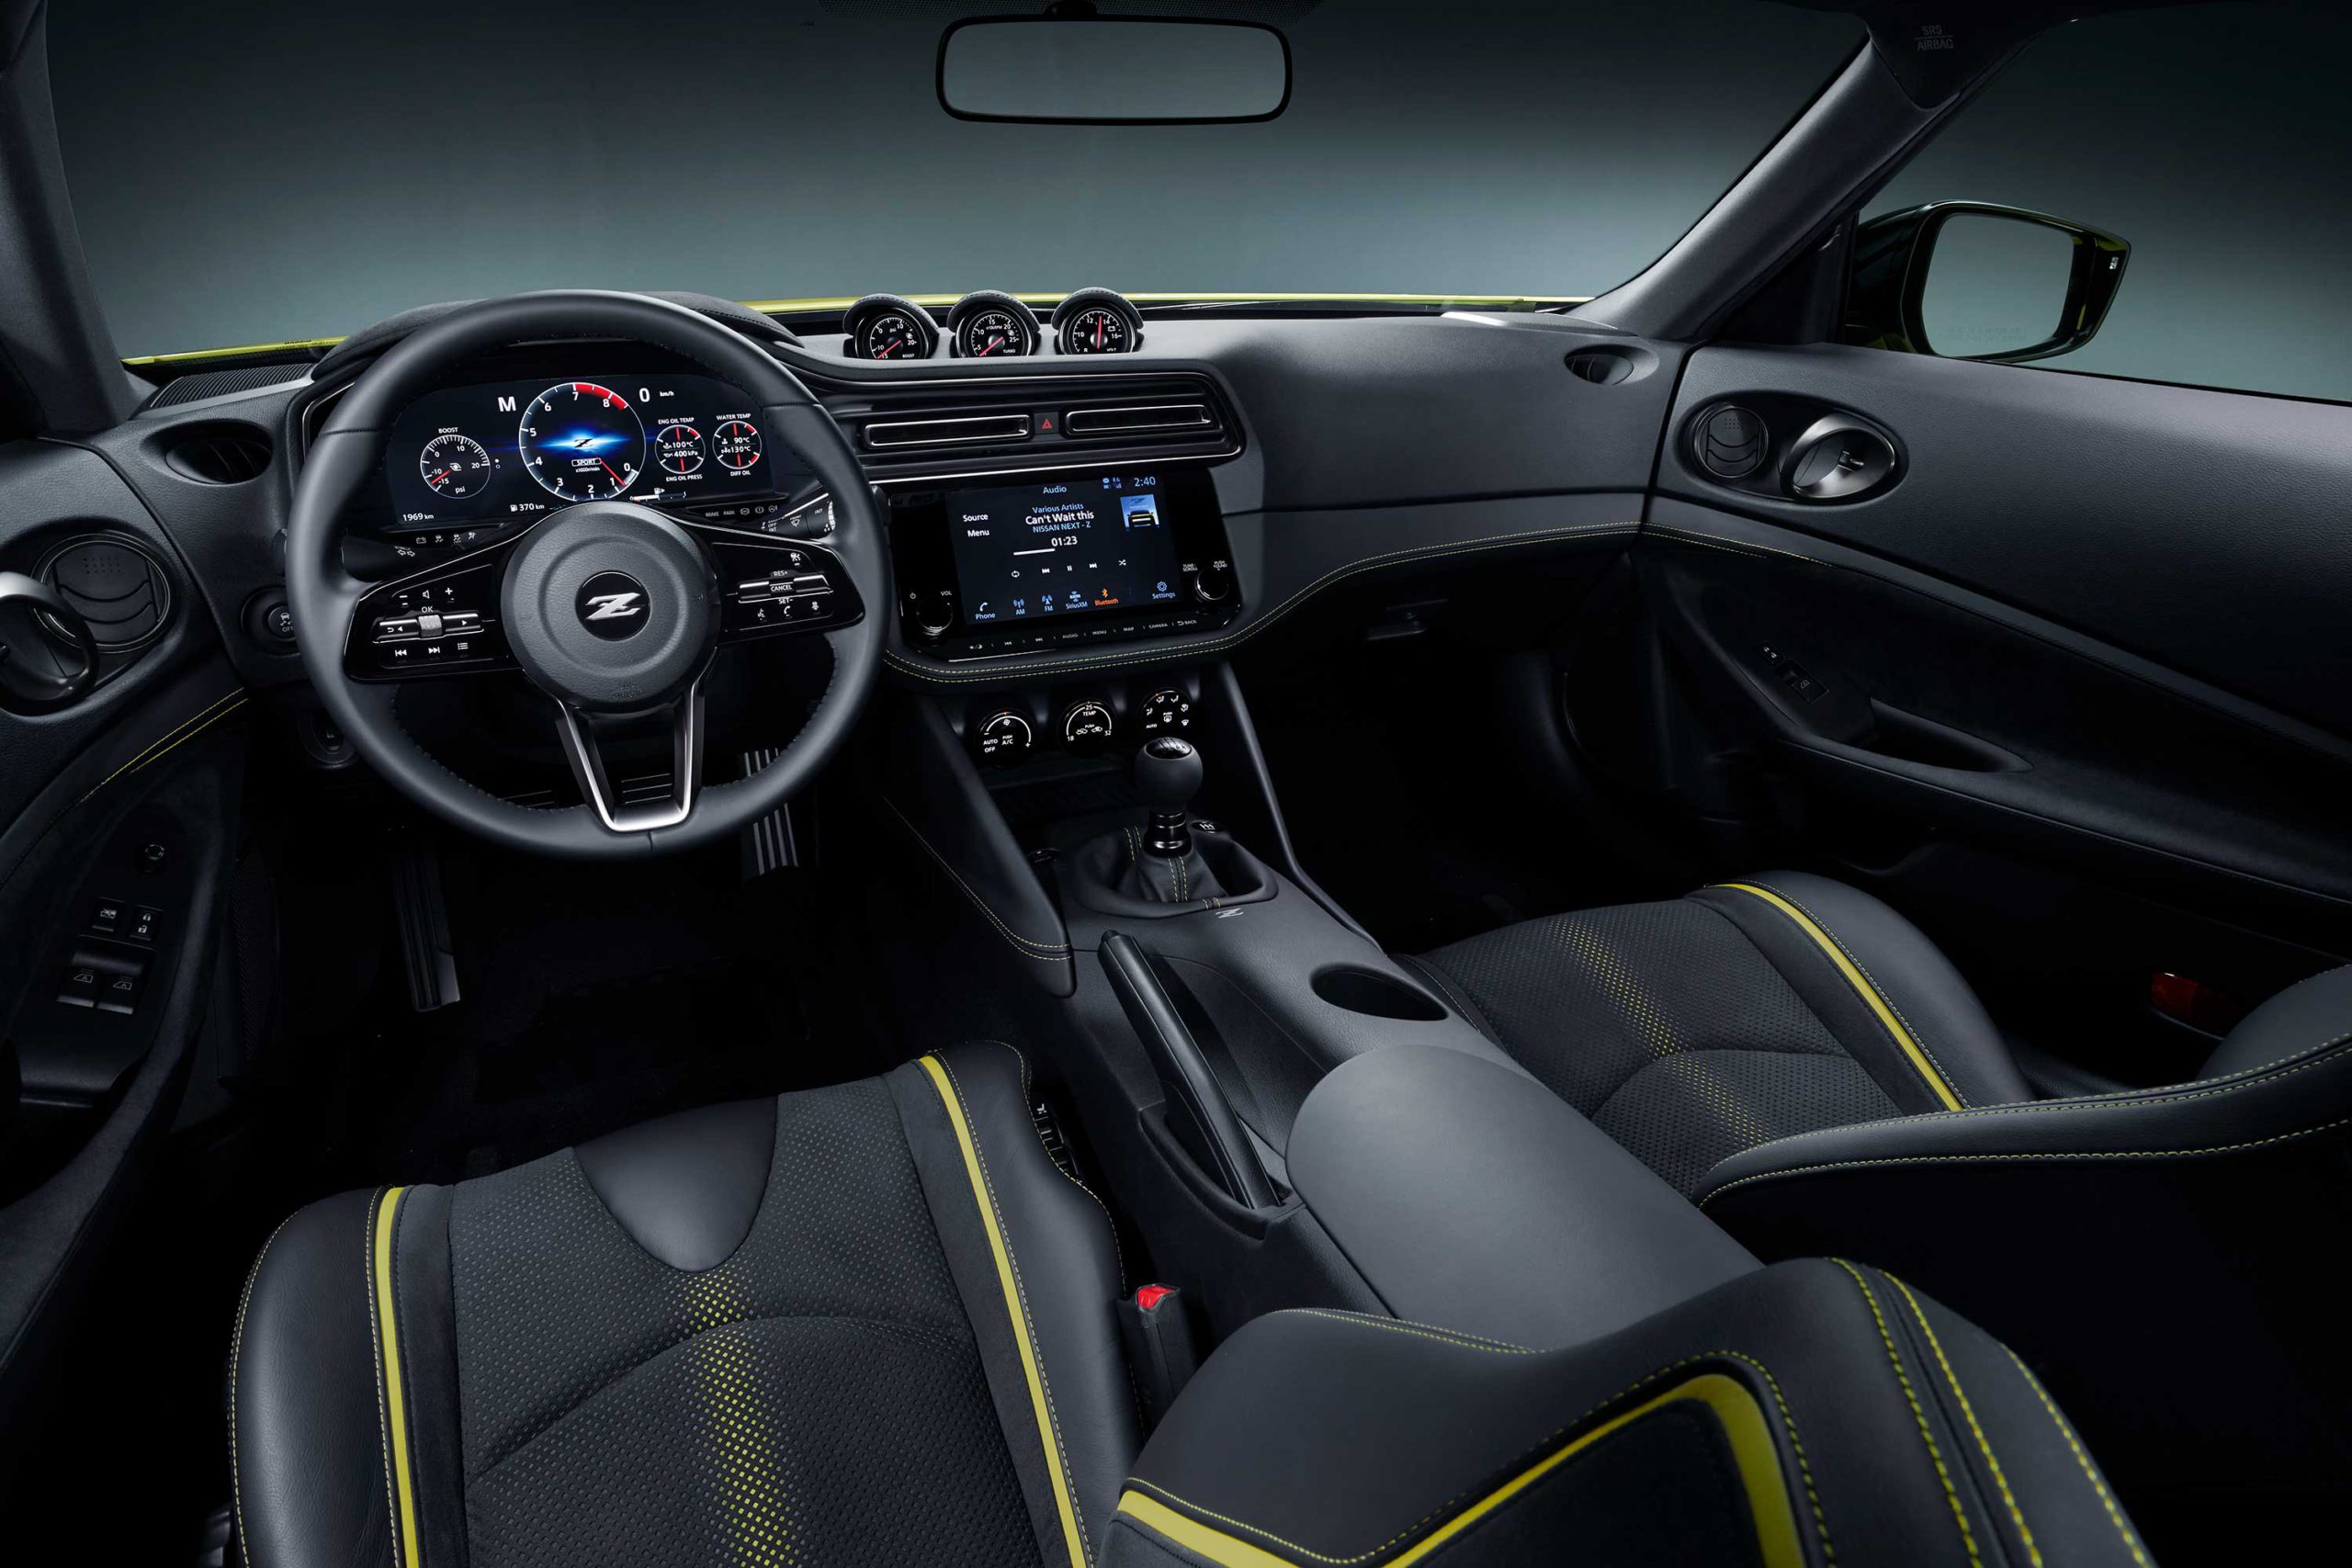 The Nissan 400Z prototype with yellow-accented black interior.